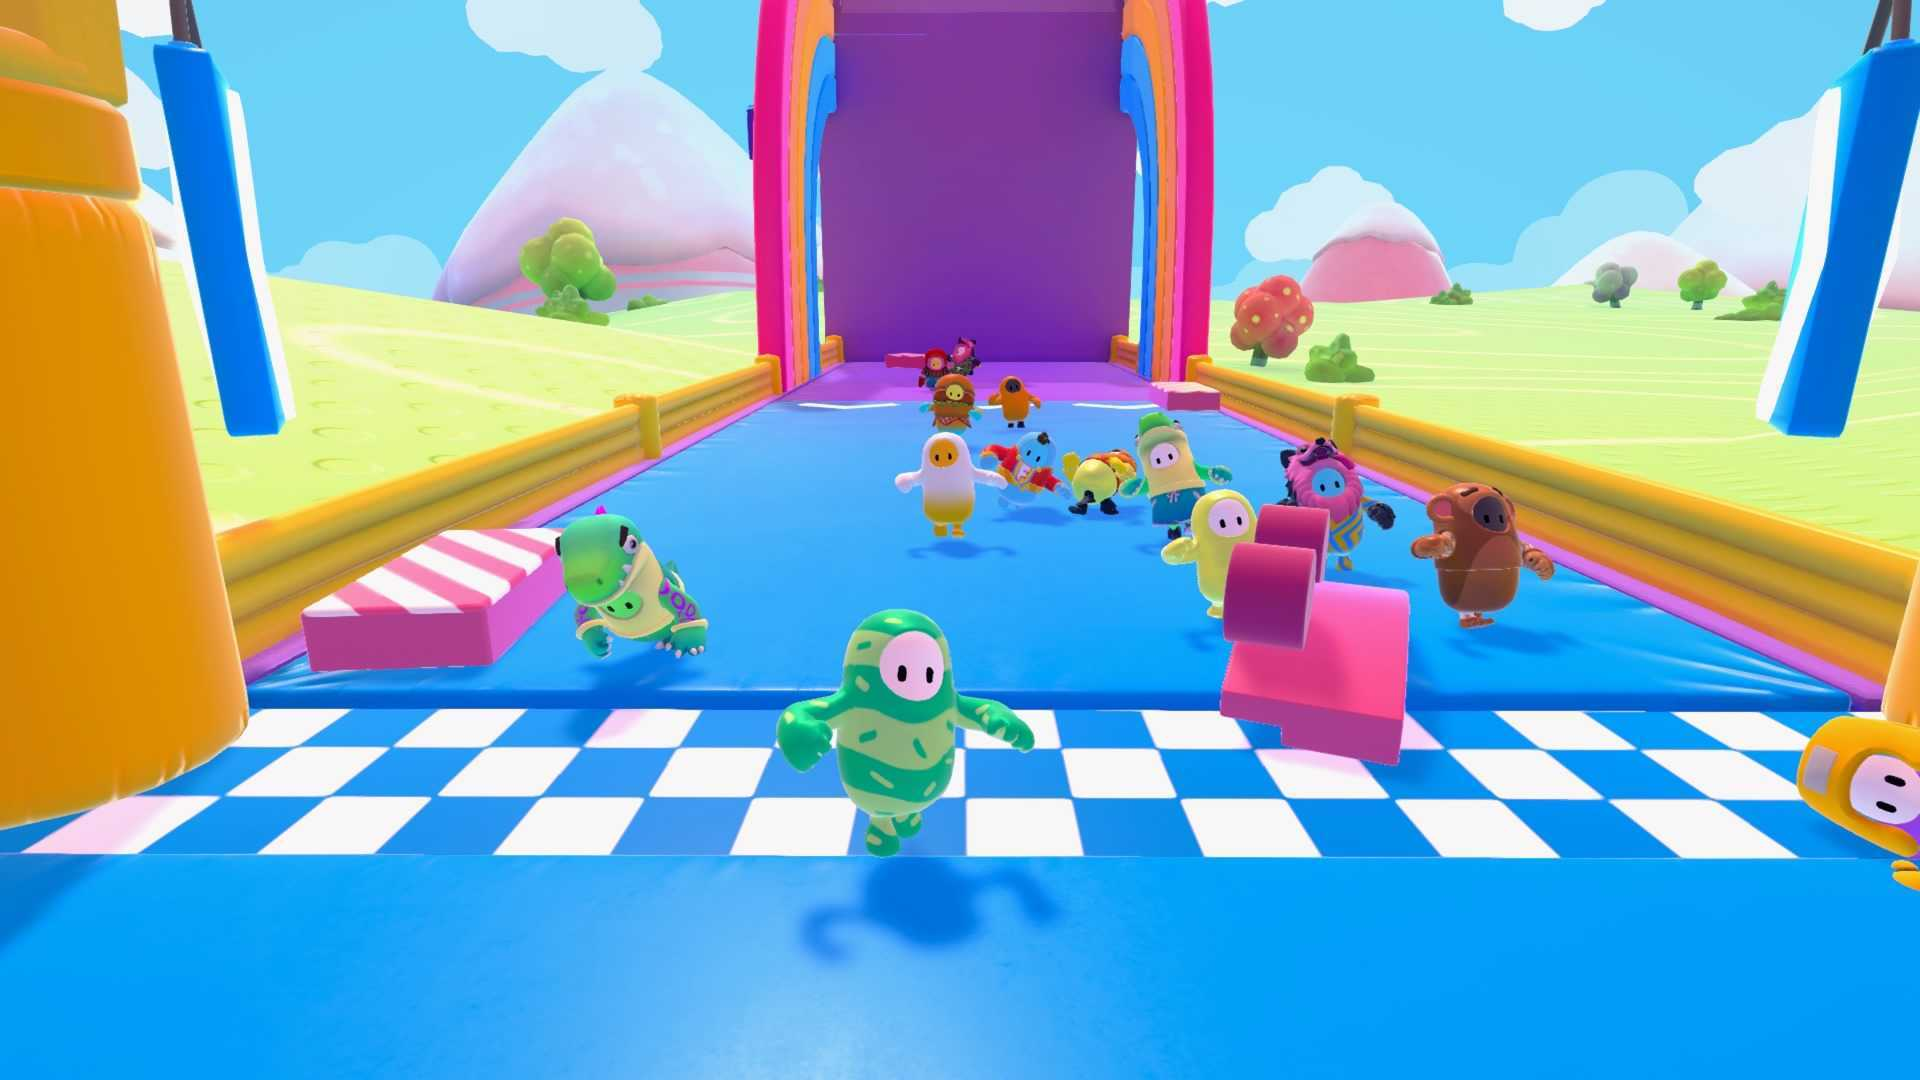 how-fall-guys,-a-battle-royale-game-with-jelly-beans,-became-this-summer's-mega-hit